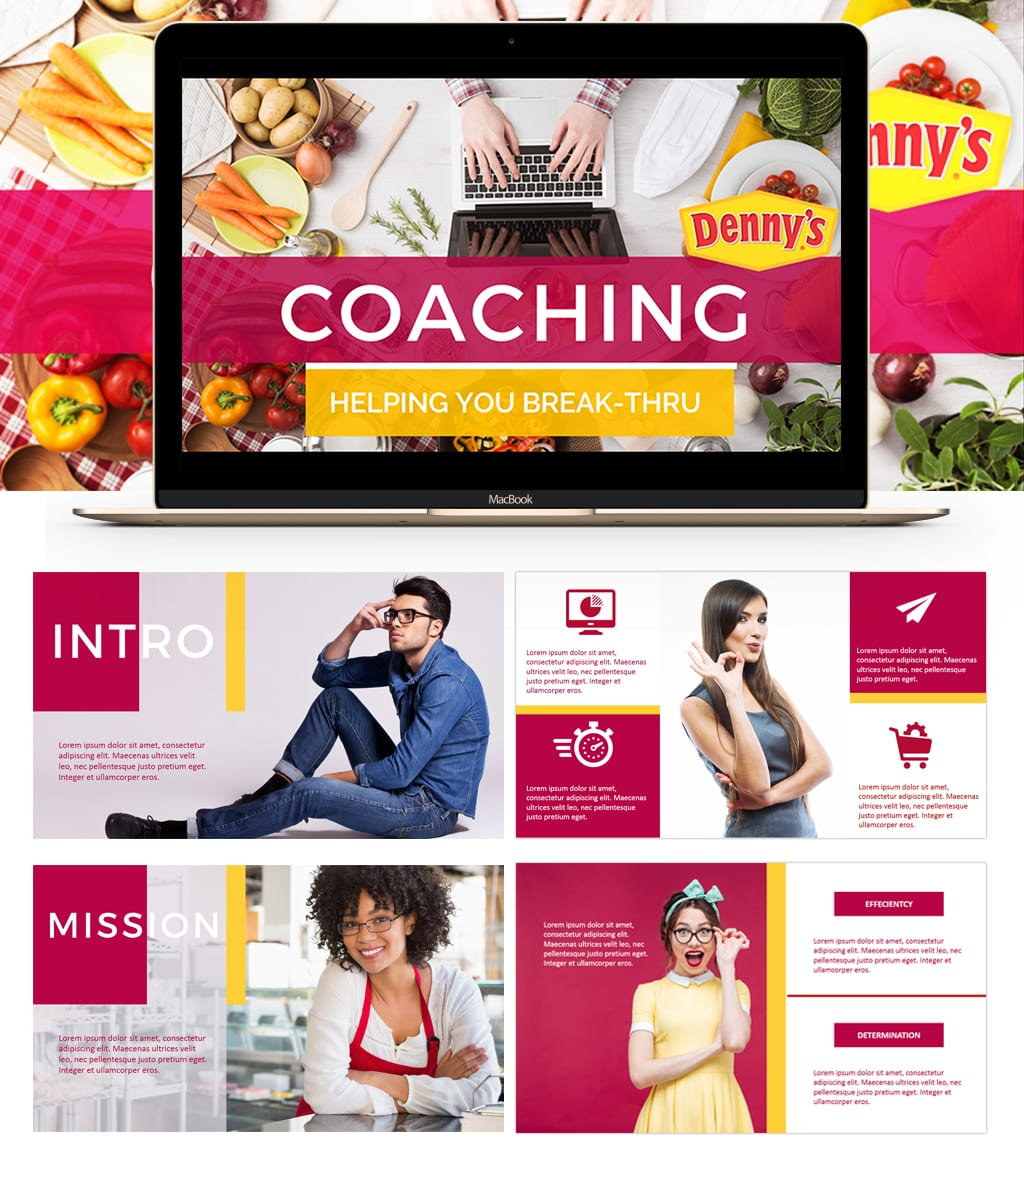 Coaching Powerpoint Presentation Design Iamgonegirldesigns premium graphic design templates